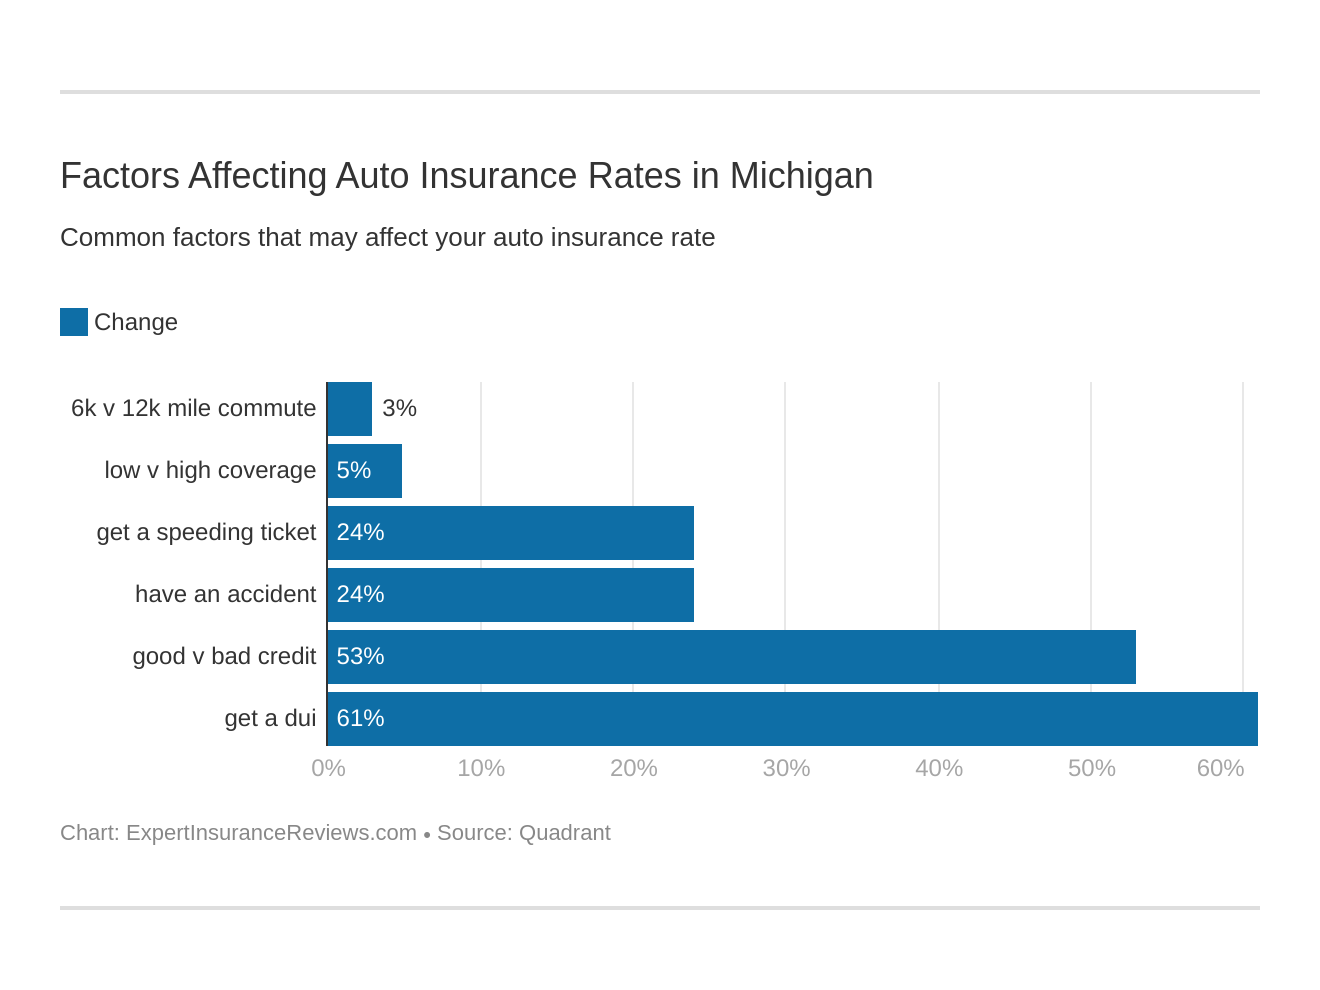 Factors Affecting Auto Insurance Rates in Michigan